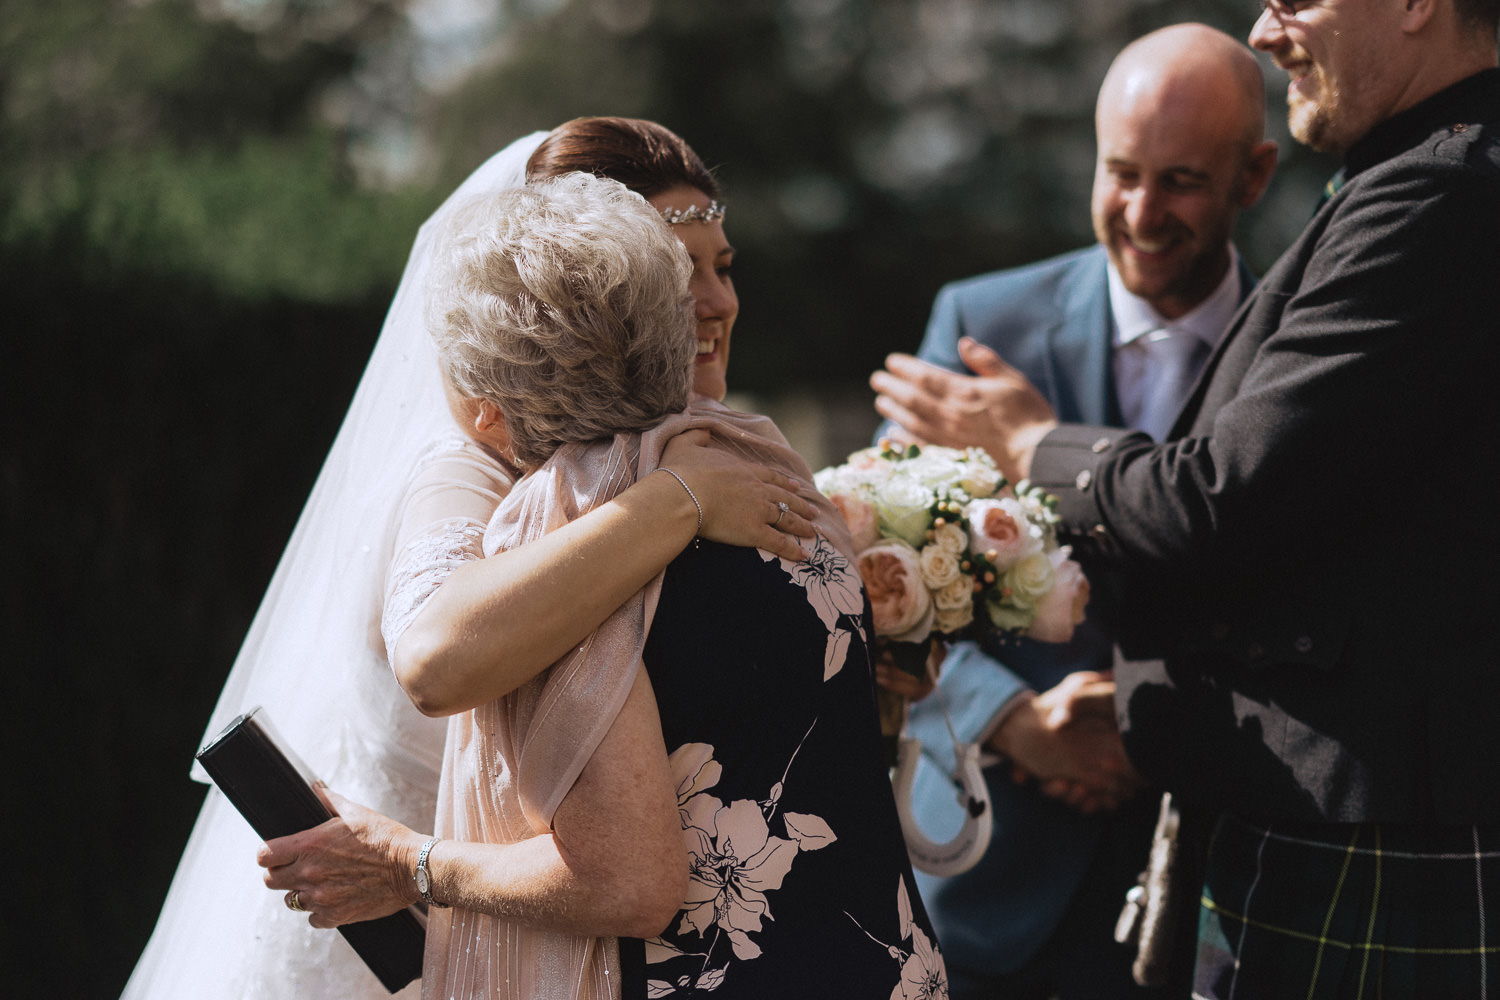 Scout Hut Wedding from Fox & Bear Photography - Bride hugging a guest after their ceremony